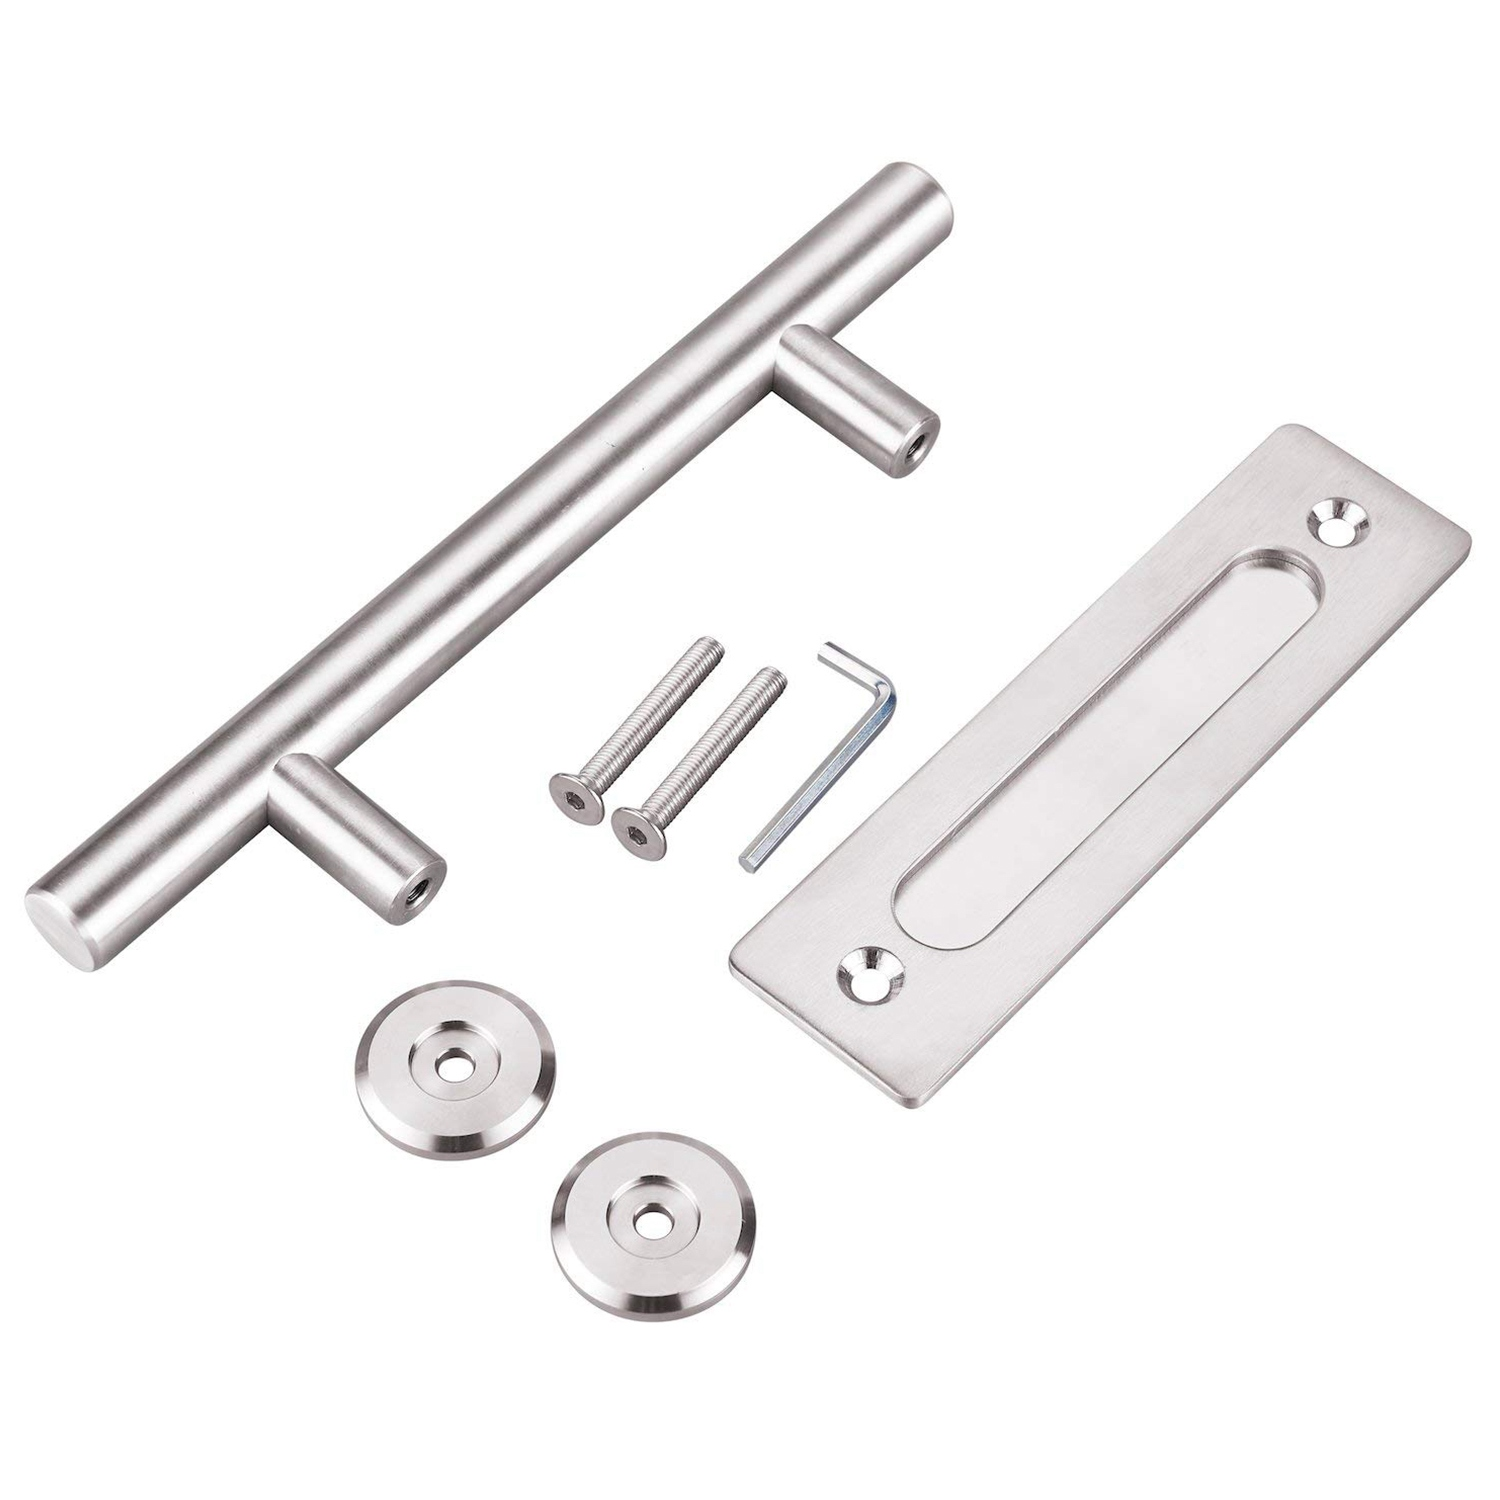 304 Stainless Steel Sliding Barn Door Pull Handle Wood Door Handle Door Handles For Interior Doors Handle304 Stainless Steel Sliding Barn Door Pull Handle Wood Door Handle Door Handles For Interior Doors Handle